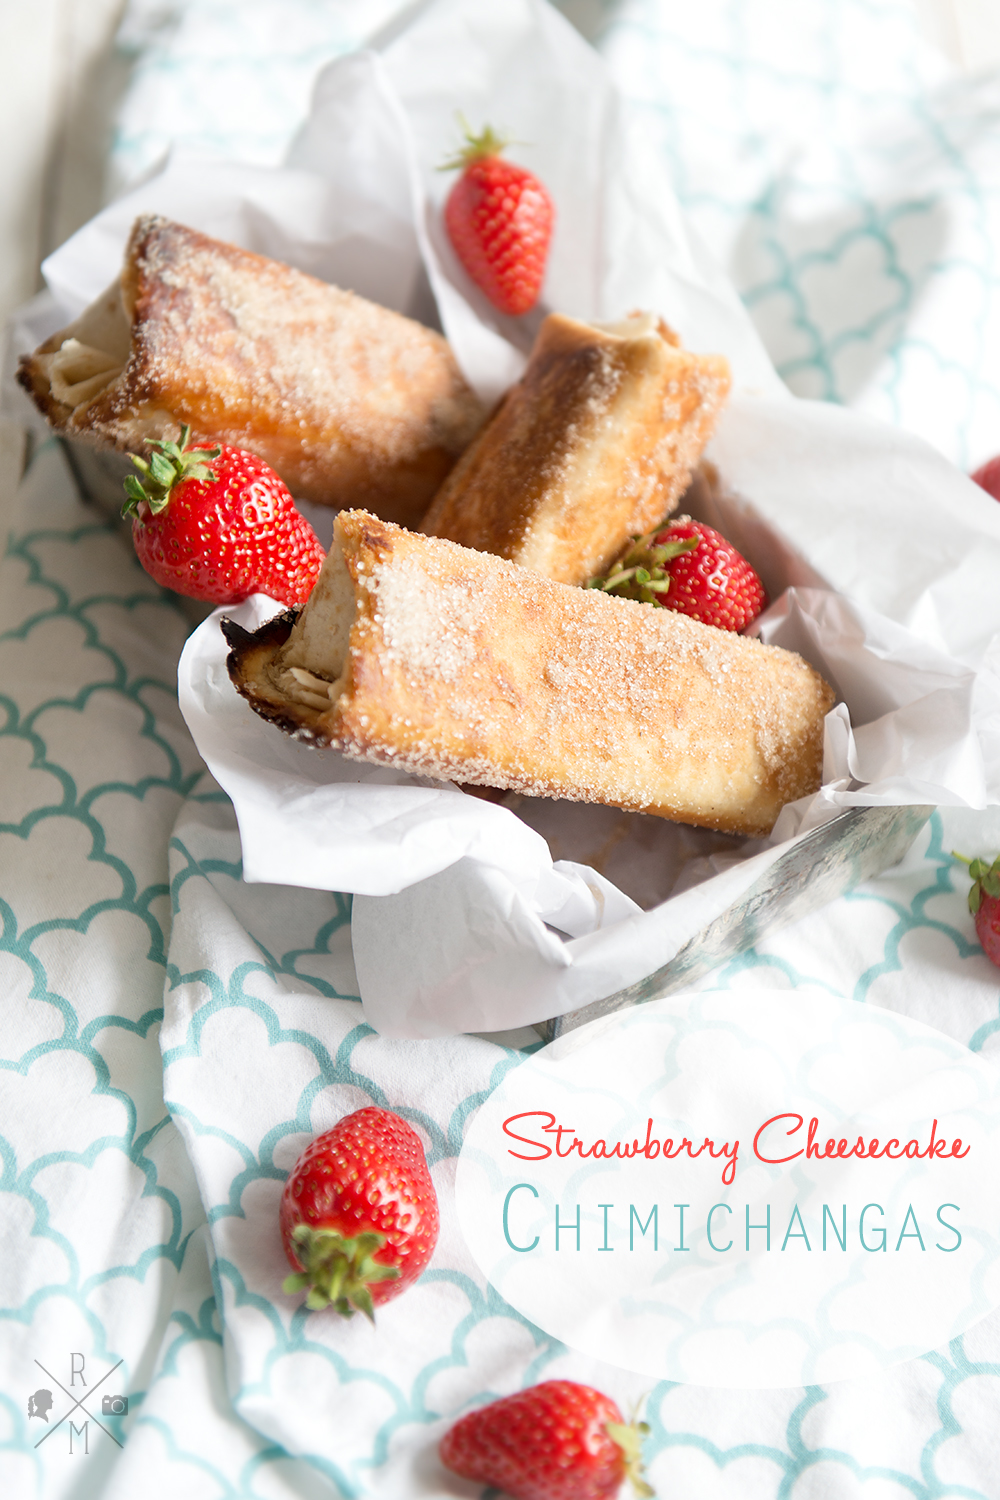 strawberry cheesecake chimichangas inkl thermomix. Black Bedroom Furniture Sets. Home Design Ideas